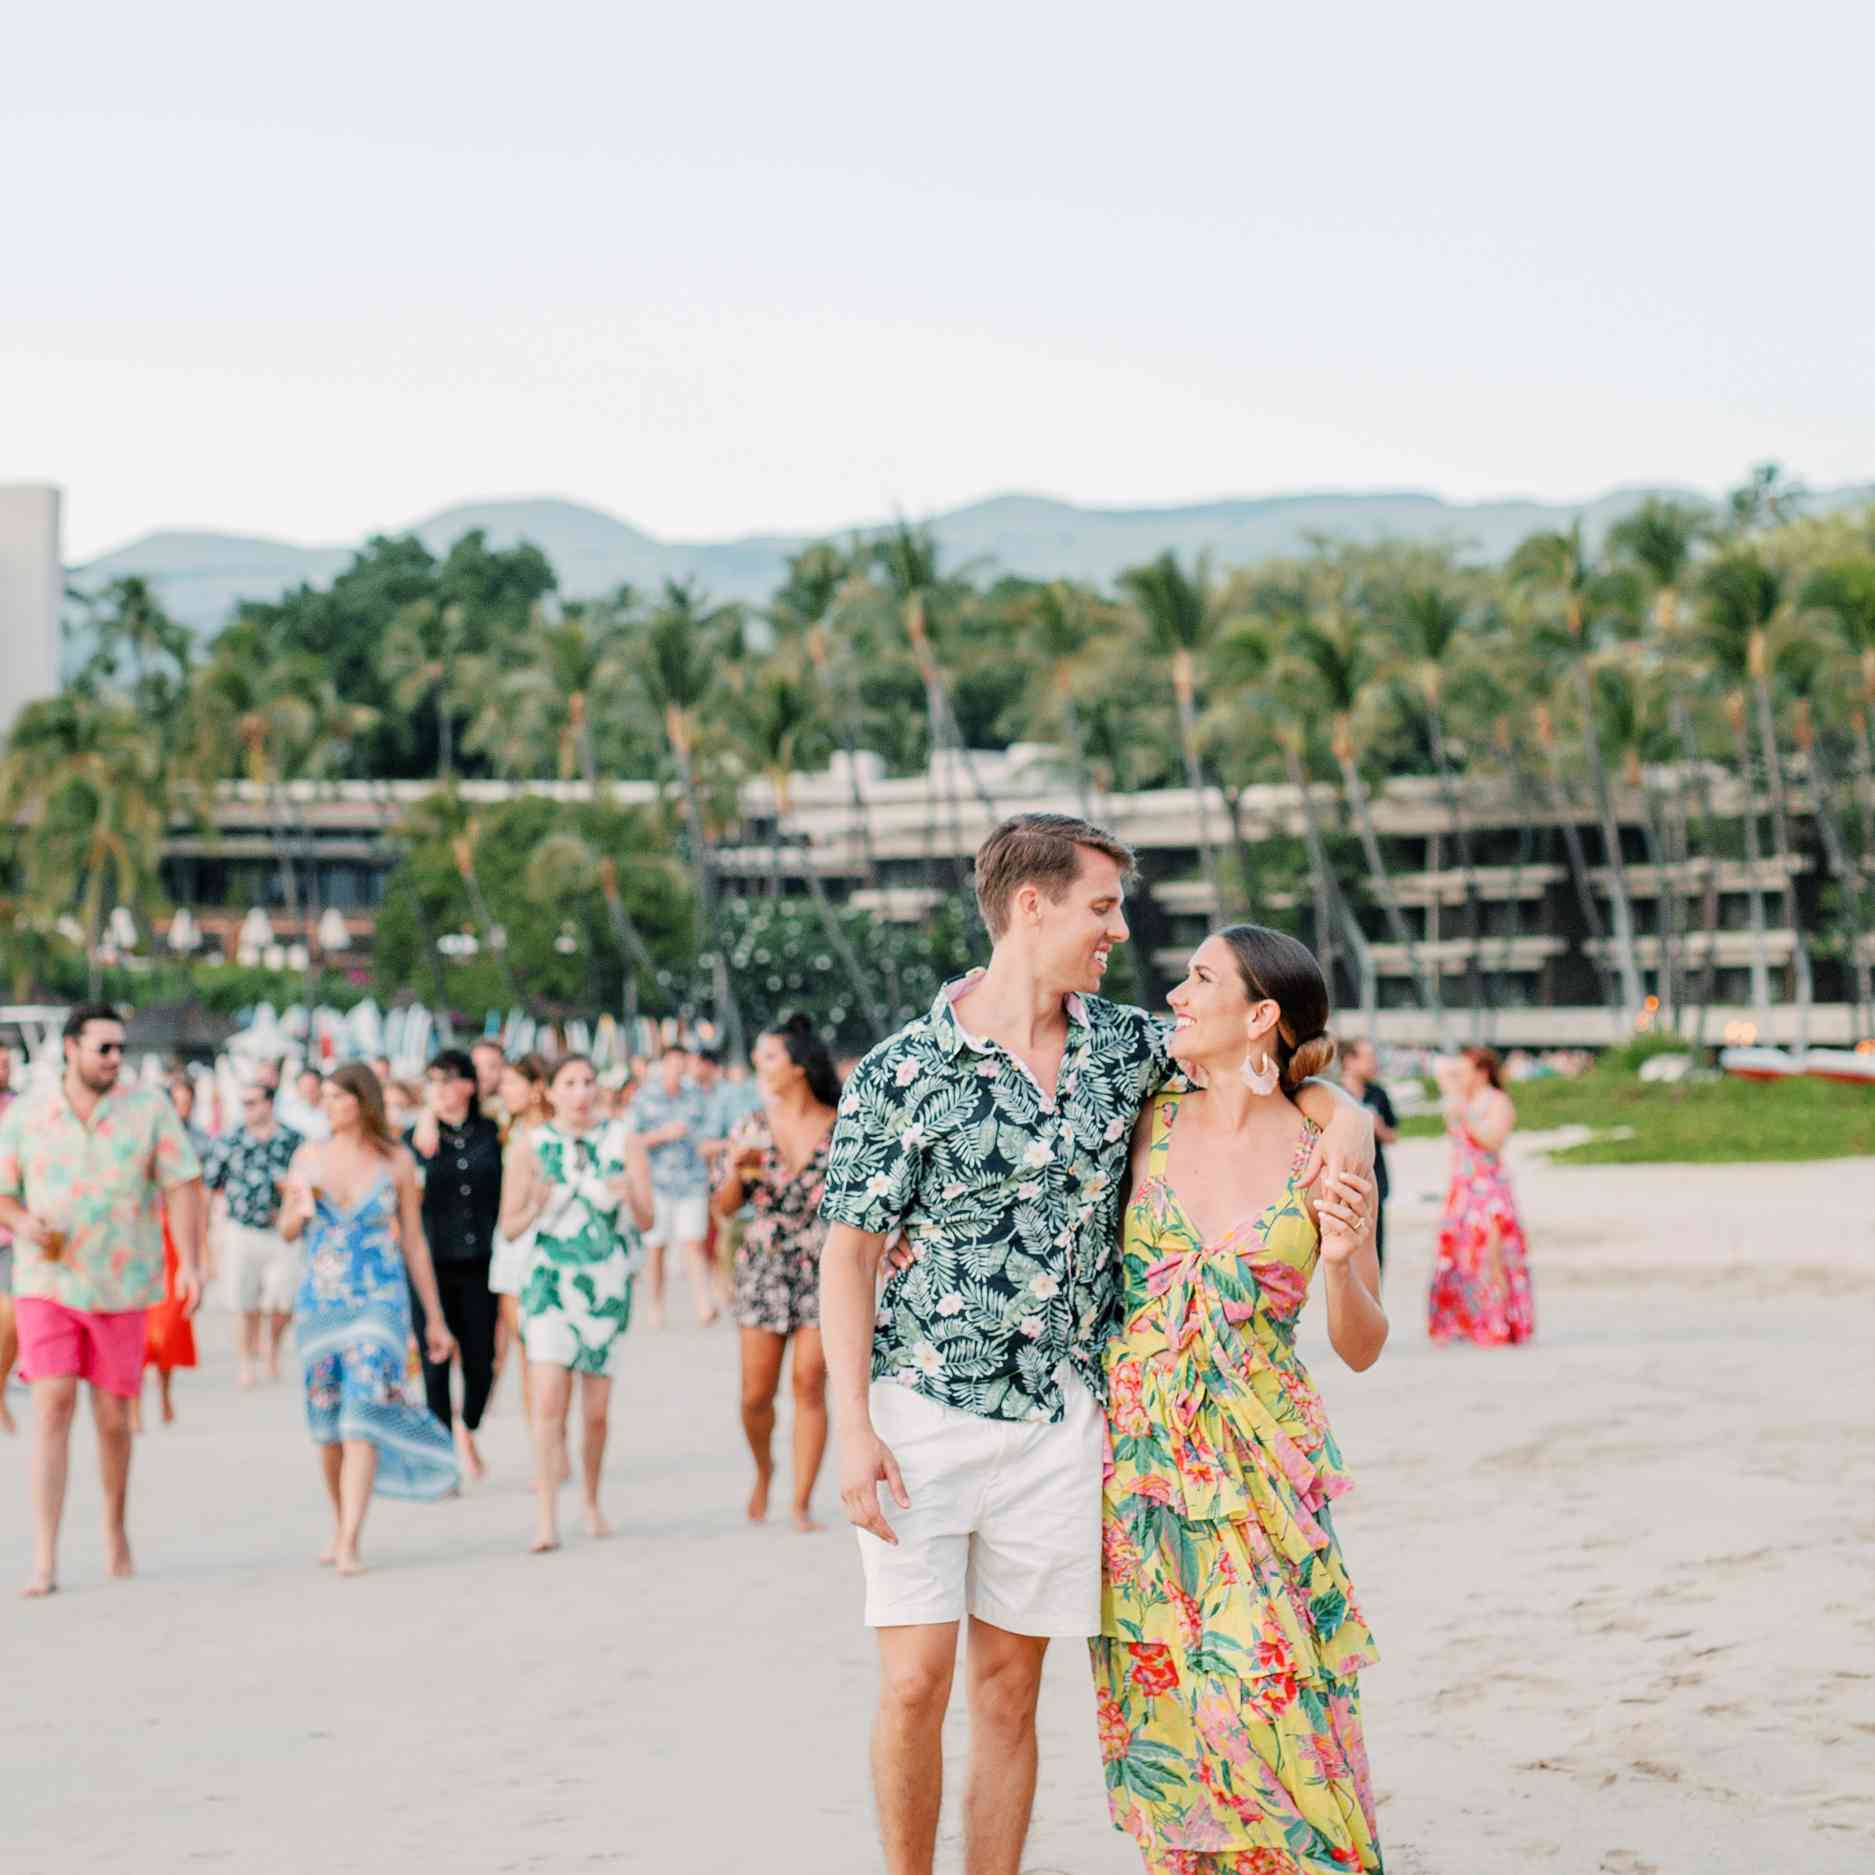 Bride and groom in casual clothing walking on the beach with a group of people walking behind them